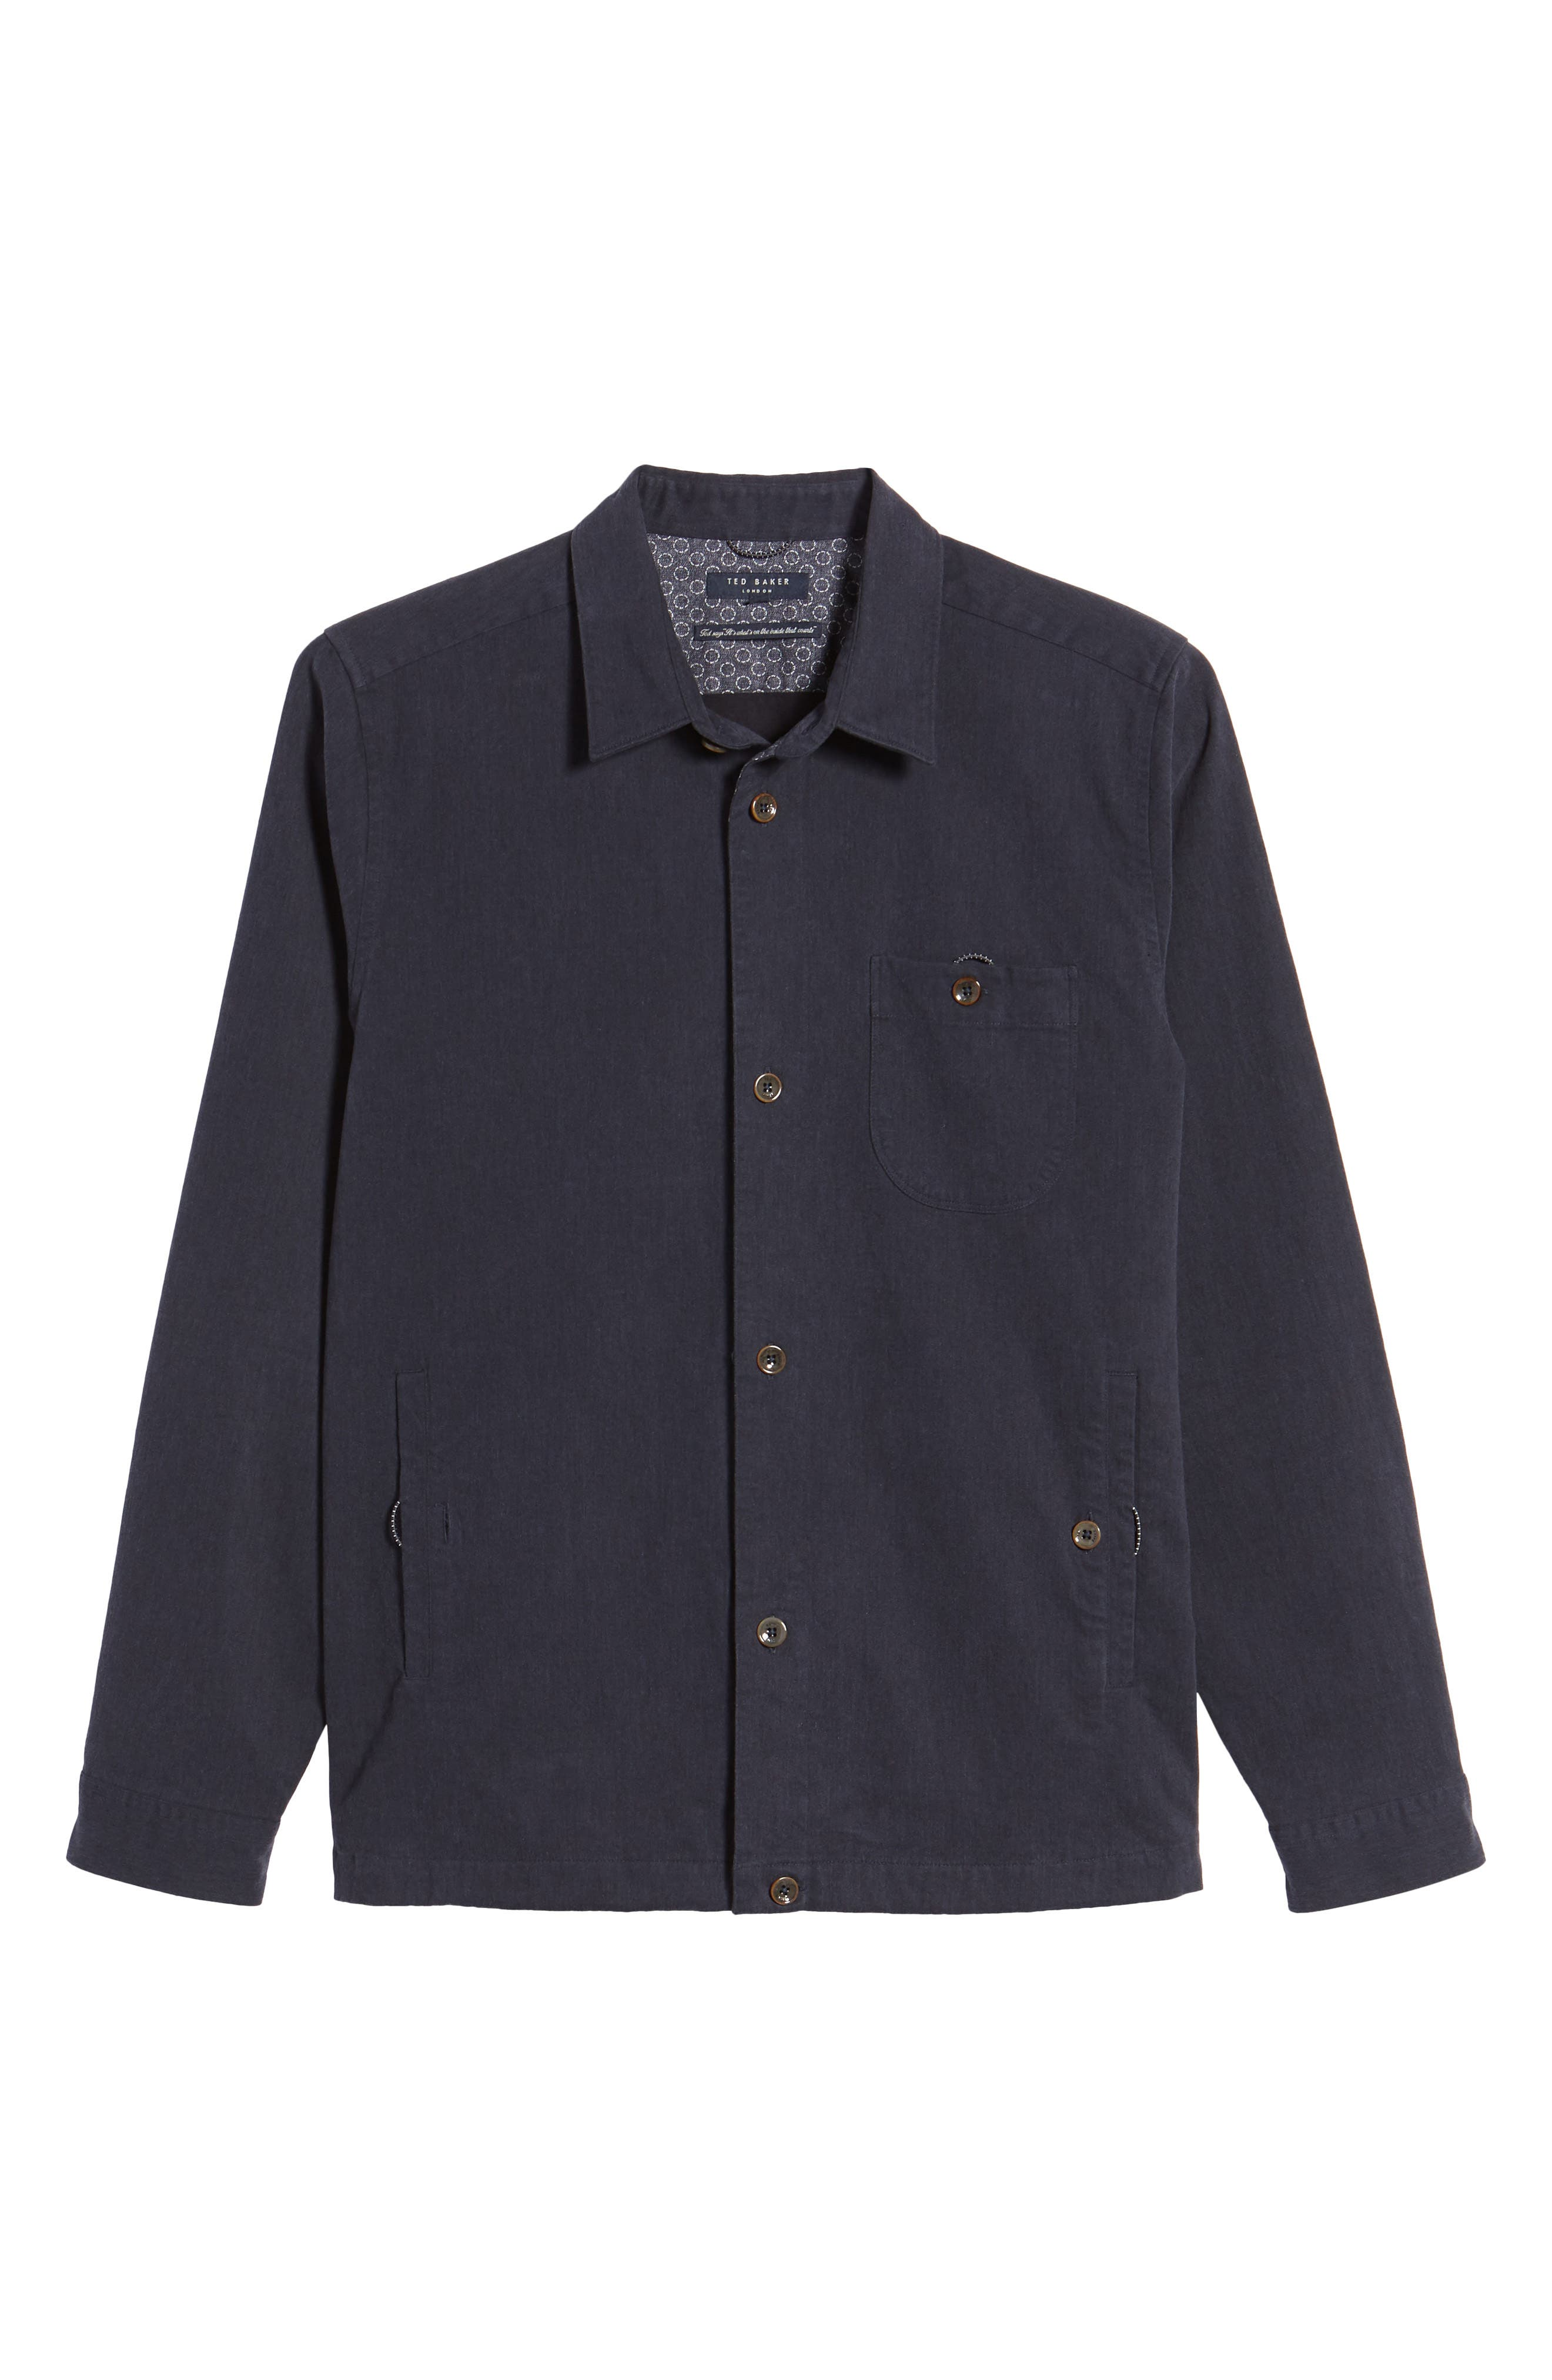 Keebord Shirt Jacket,                             Alternate thumbnail 6, color,                             Navy